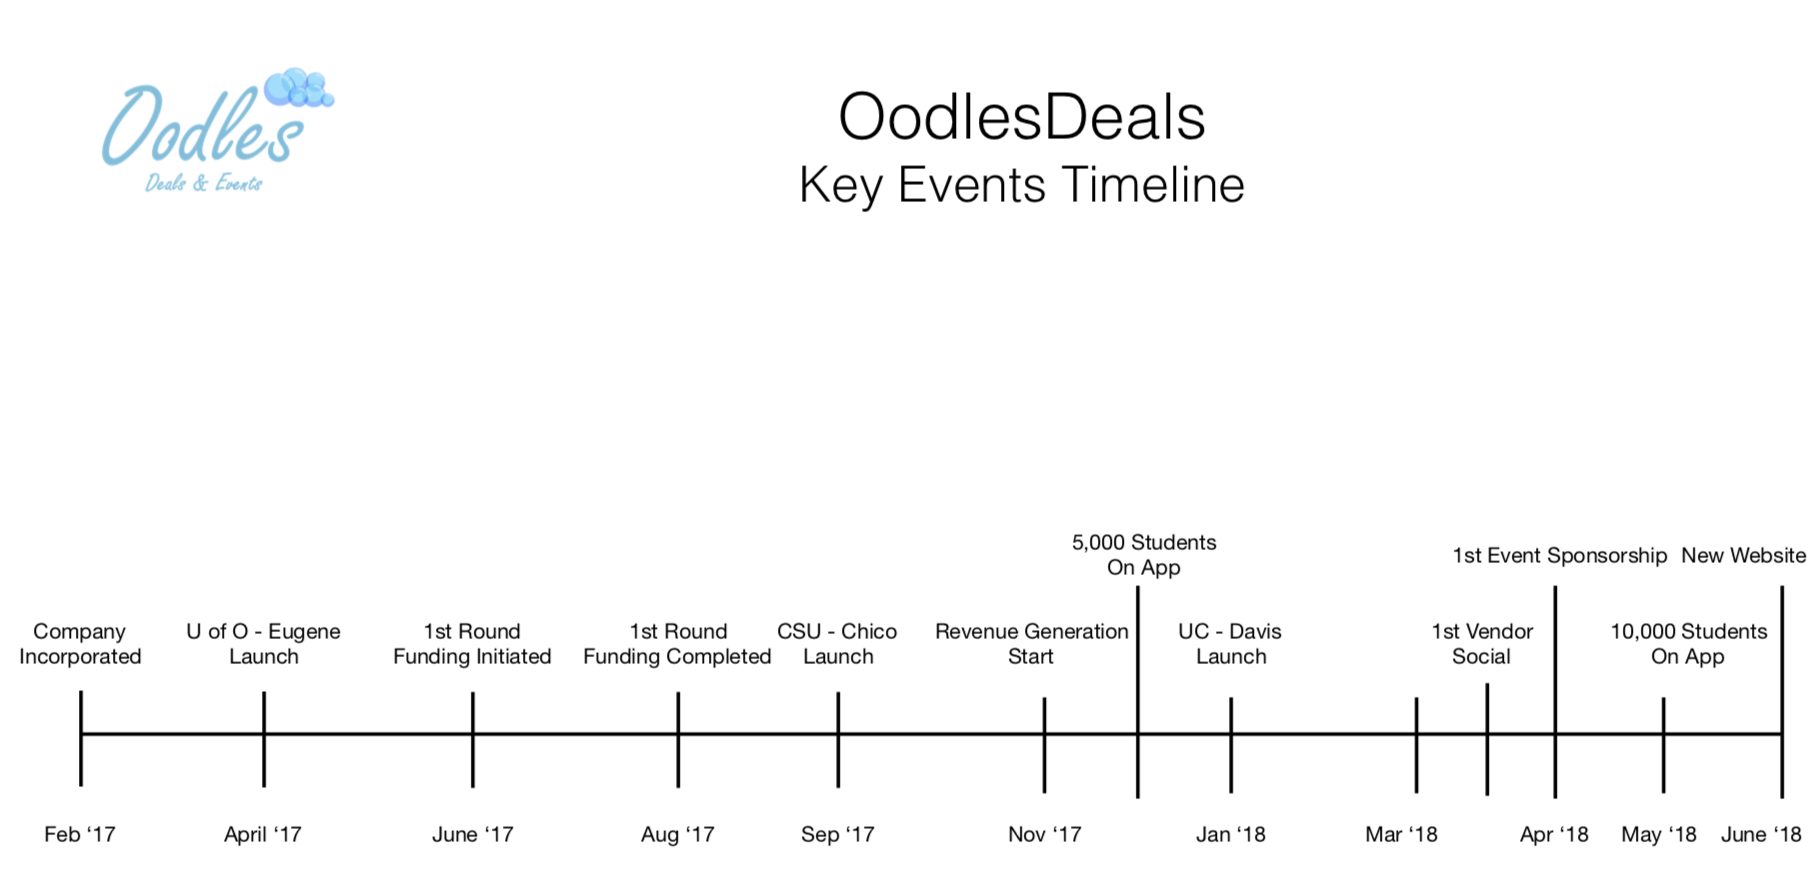 Oodles_Yr 2017 - 18 School Year_Key Events Timeline.png